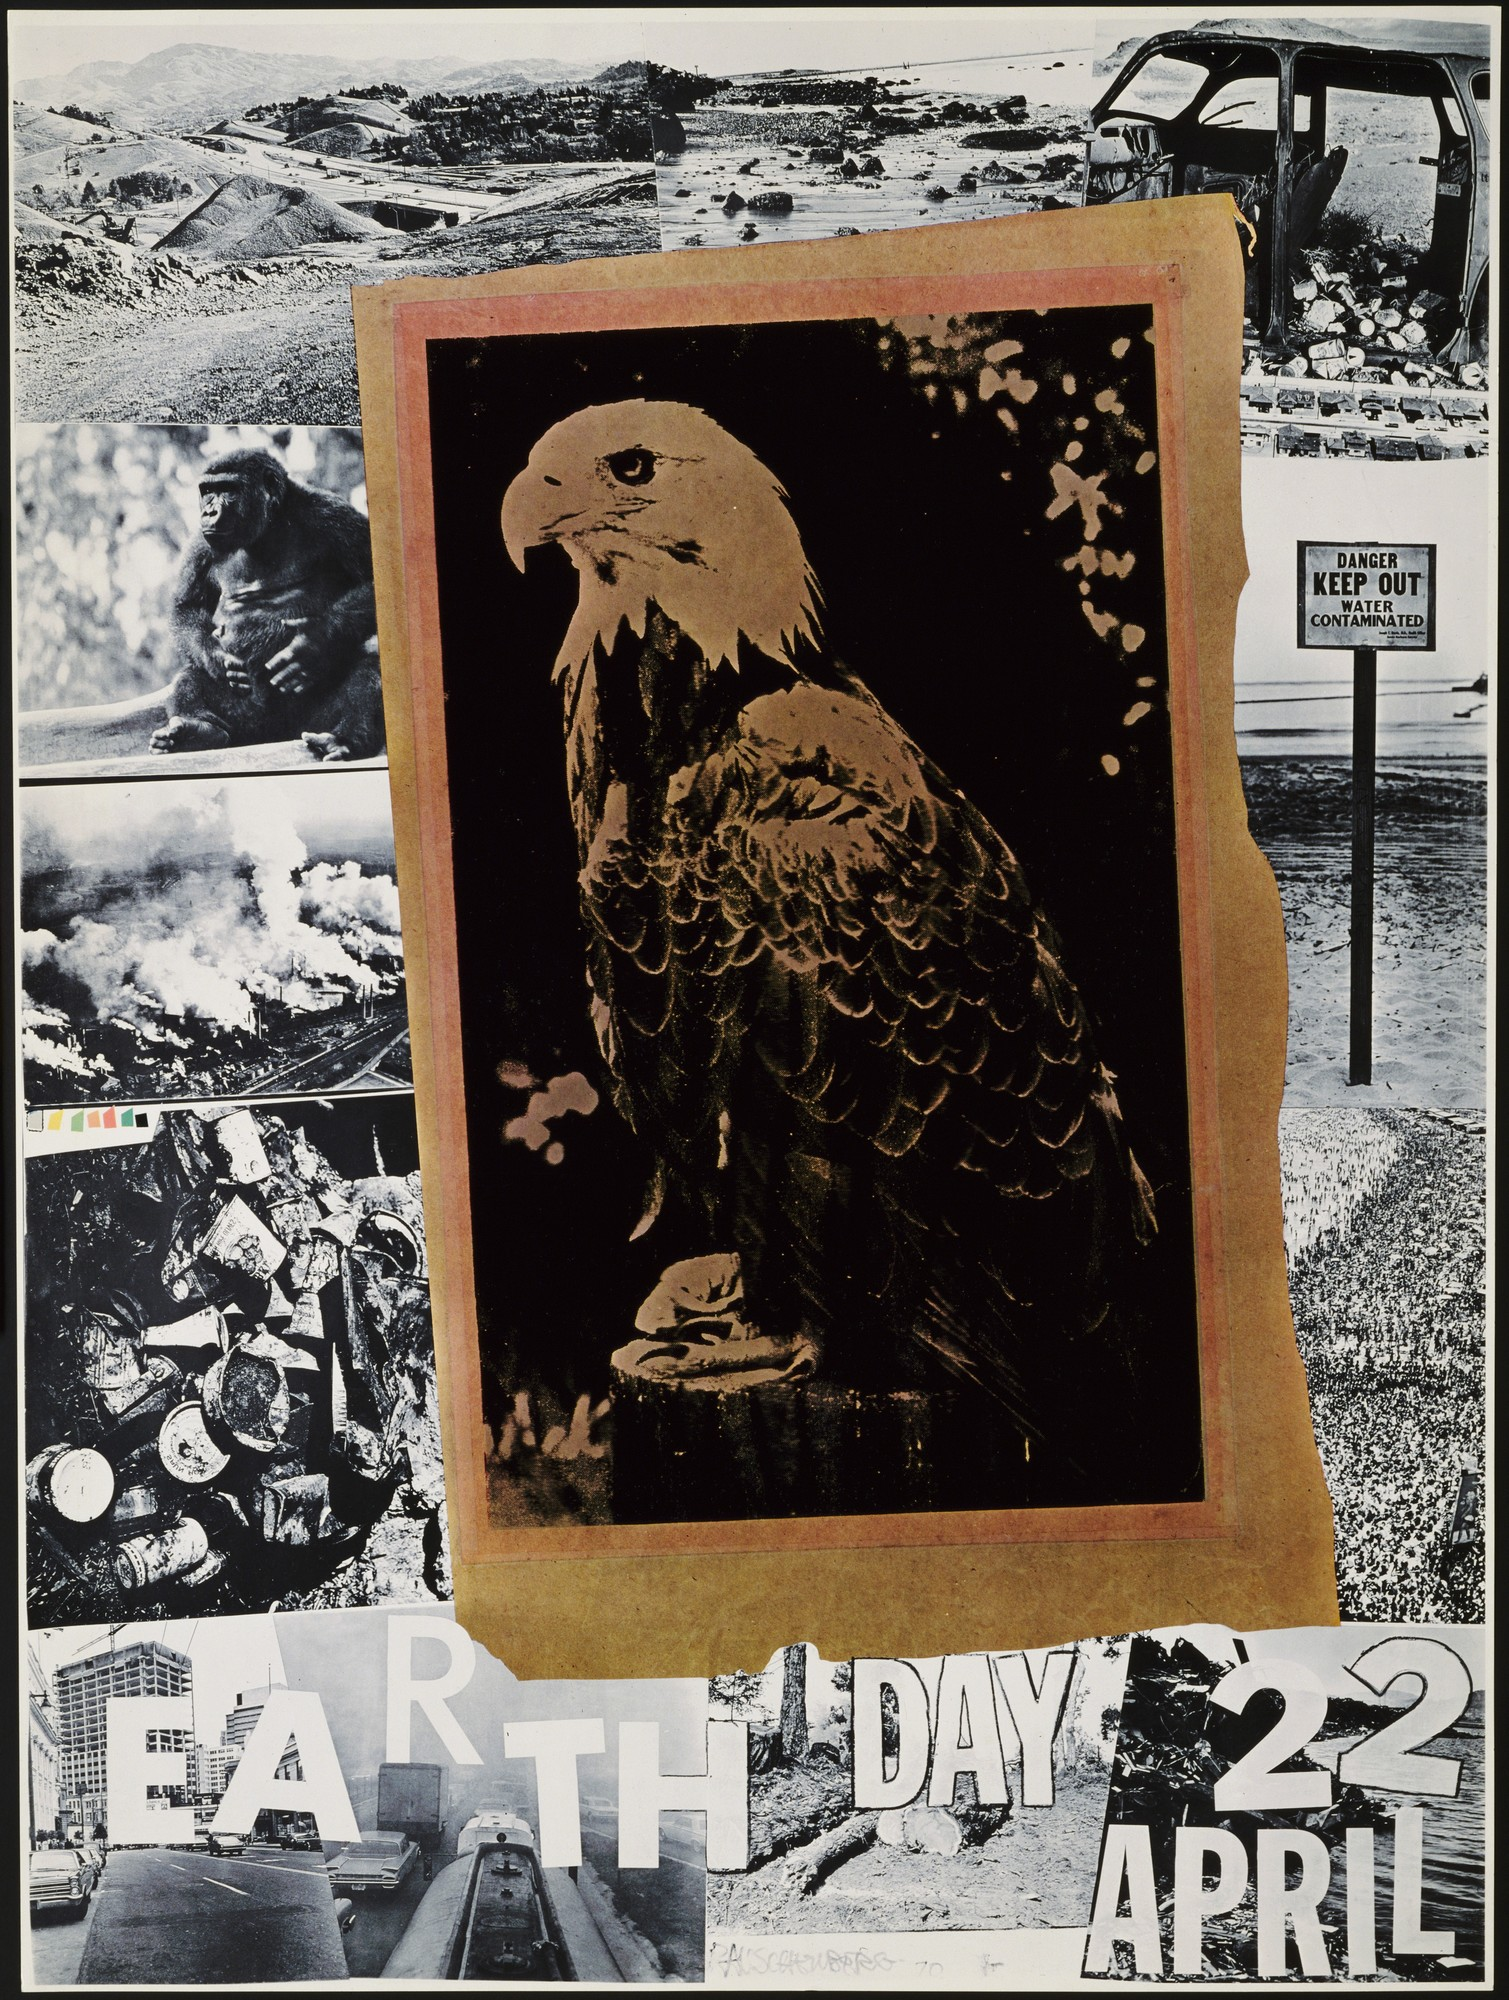 antique image of a bald eagle layered over collage of black and white images